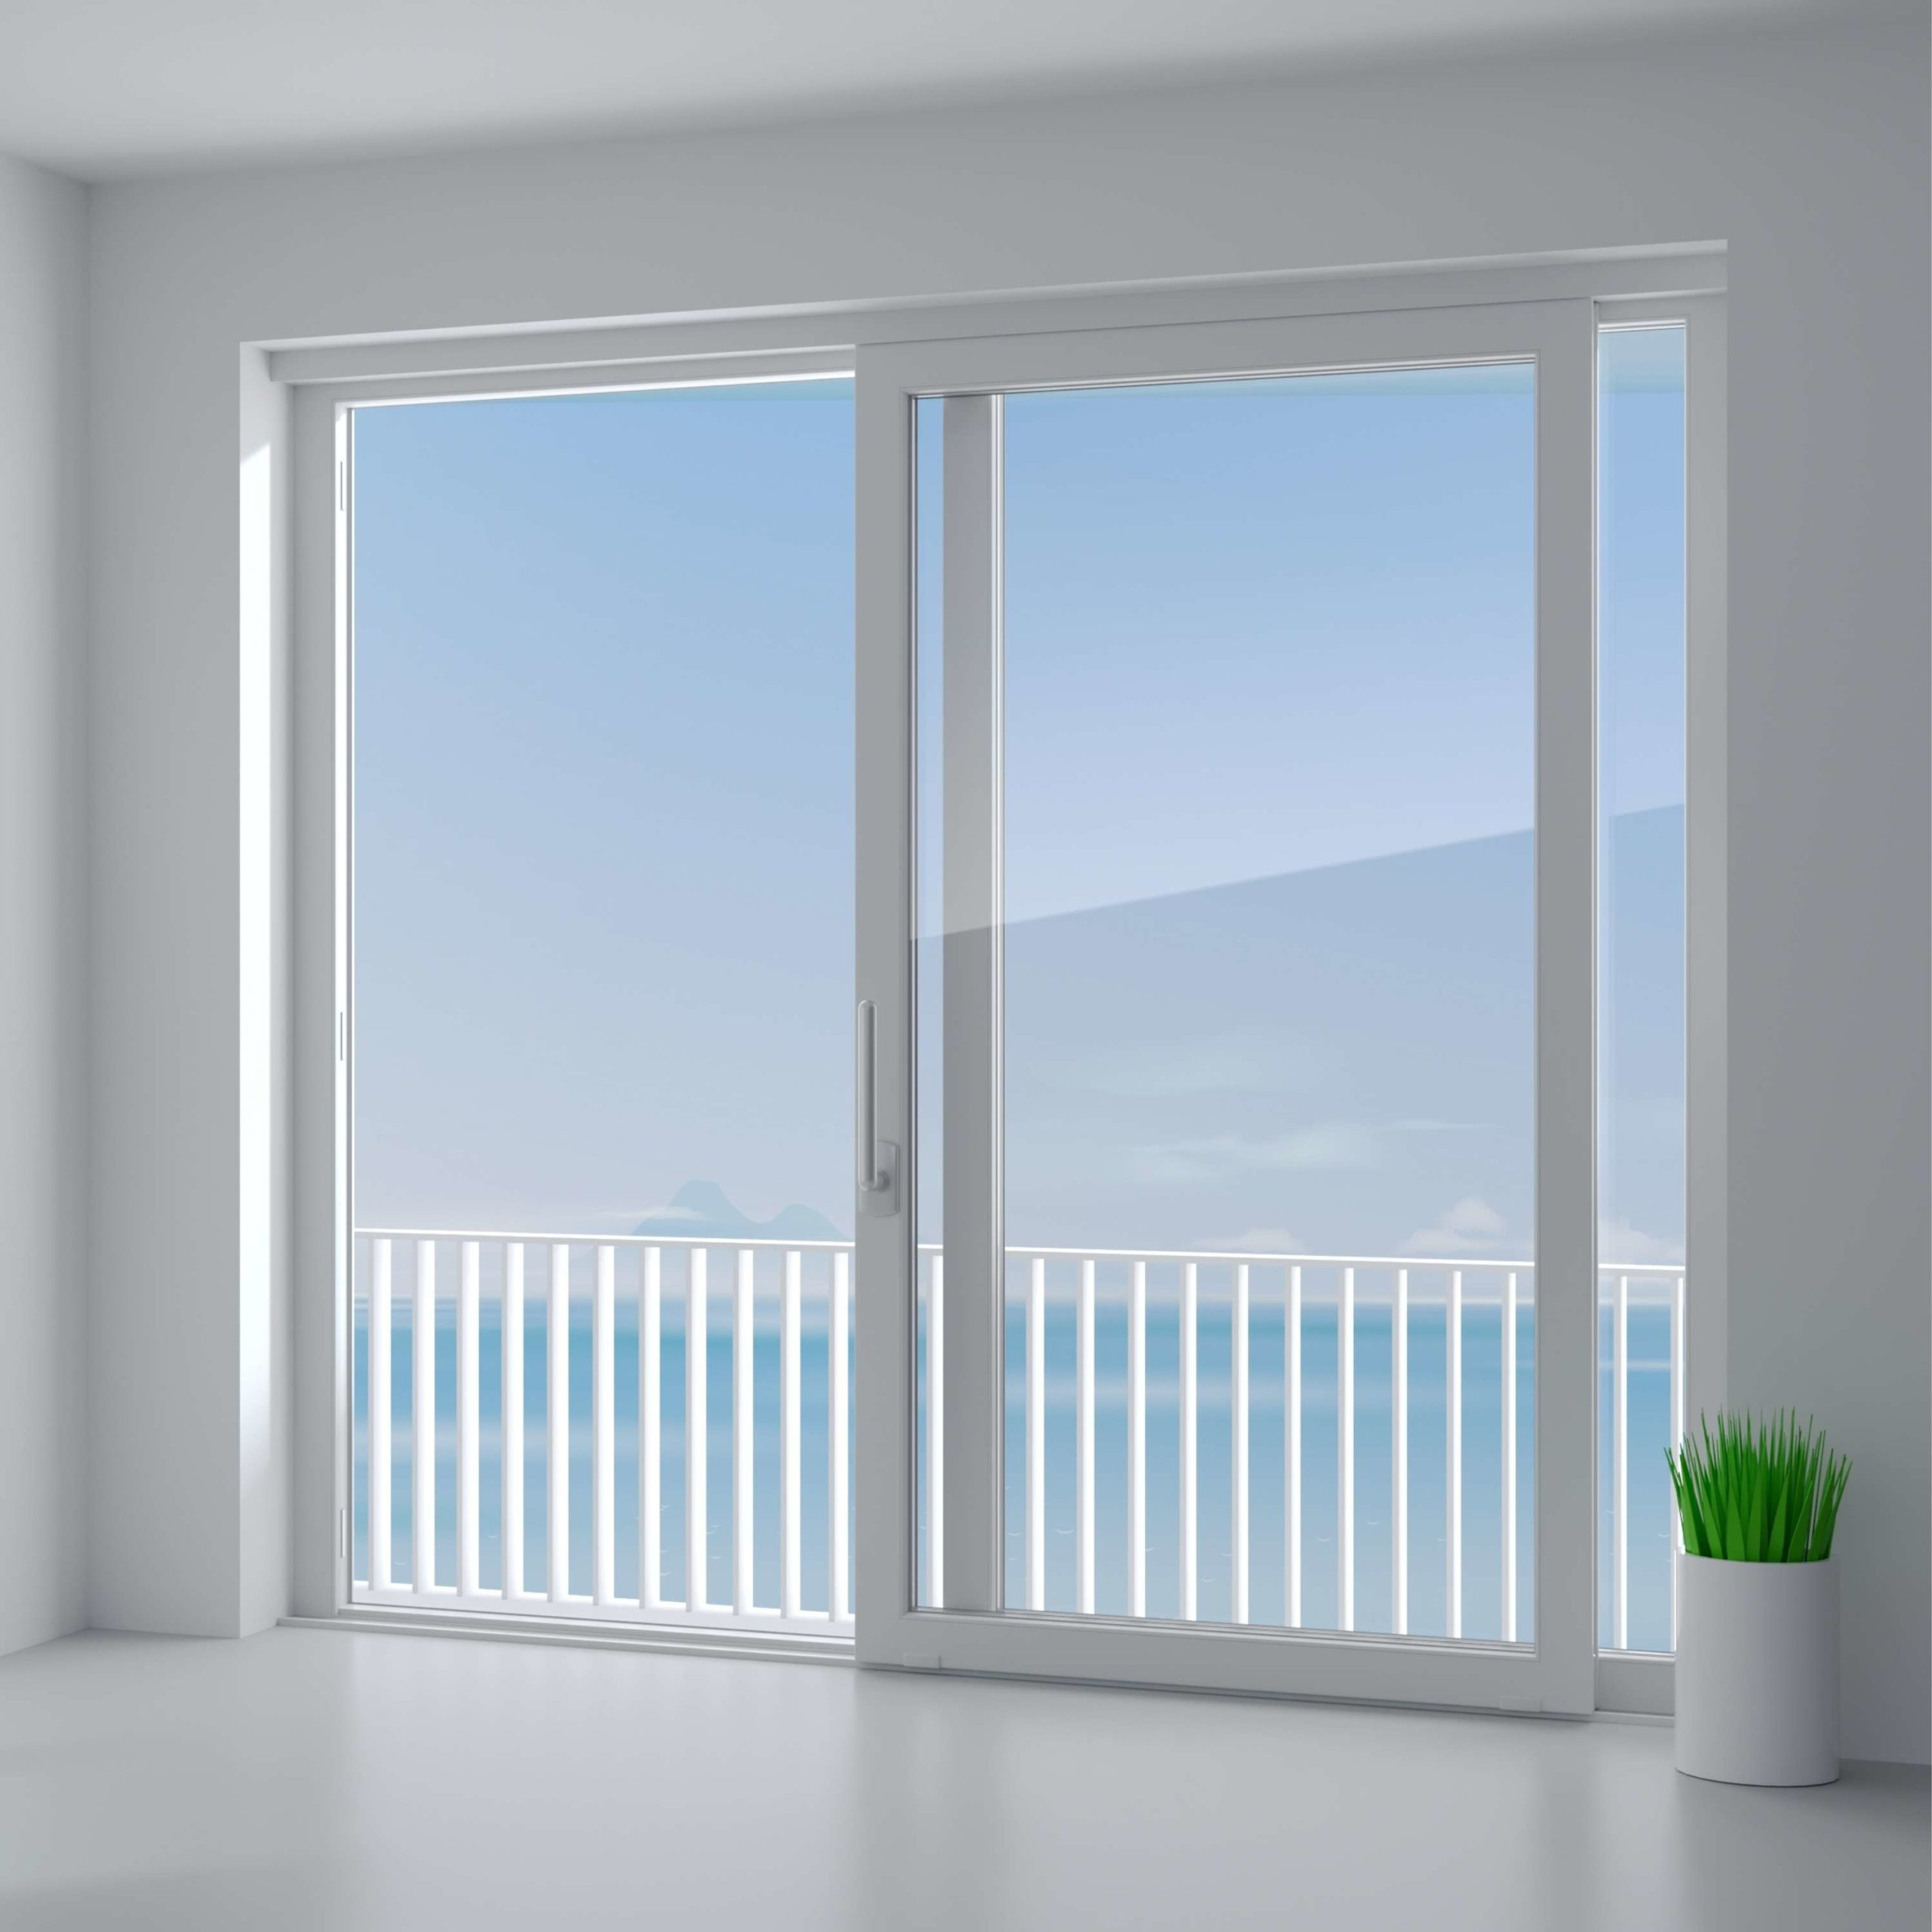 pvc windows and doors available in Malta